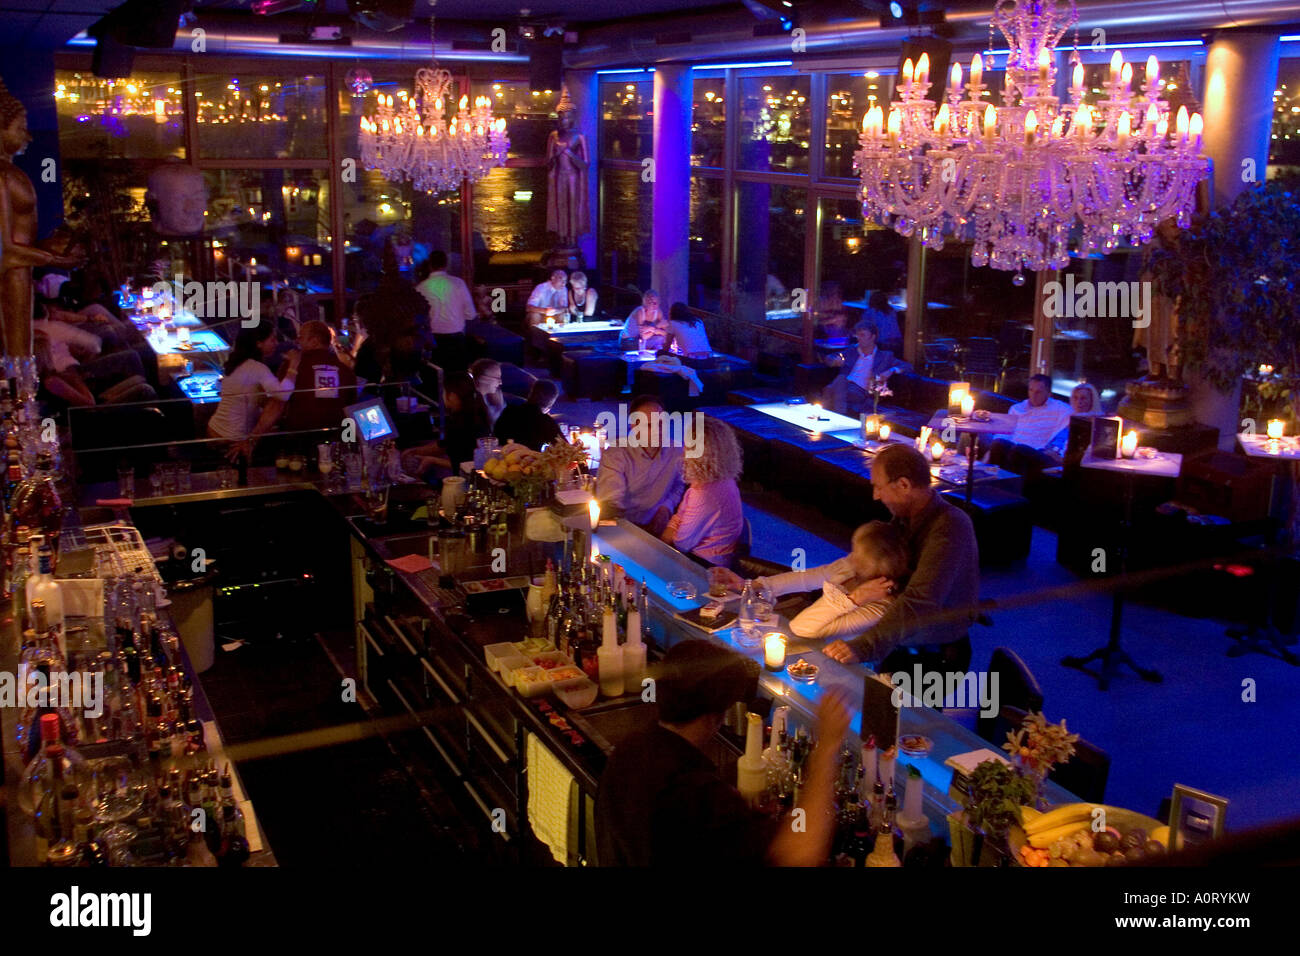 indochine restaurant and bar on neuemuehlen 11 altona hamburg germany stock photo royalty free. Black Bedroom Furniture Sets. Home Design Ideas